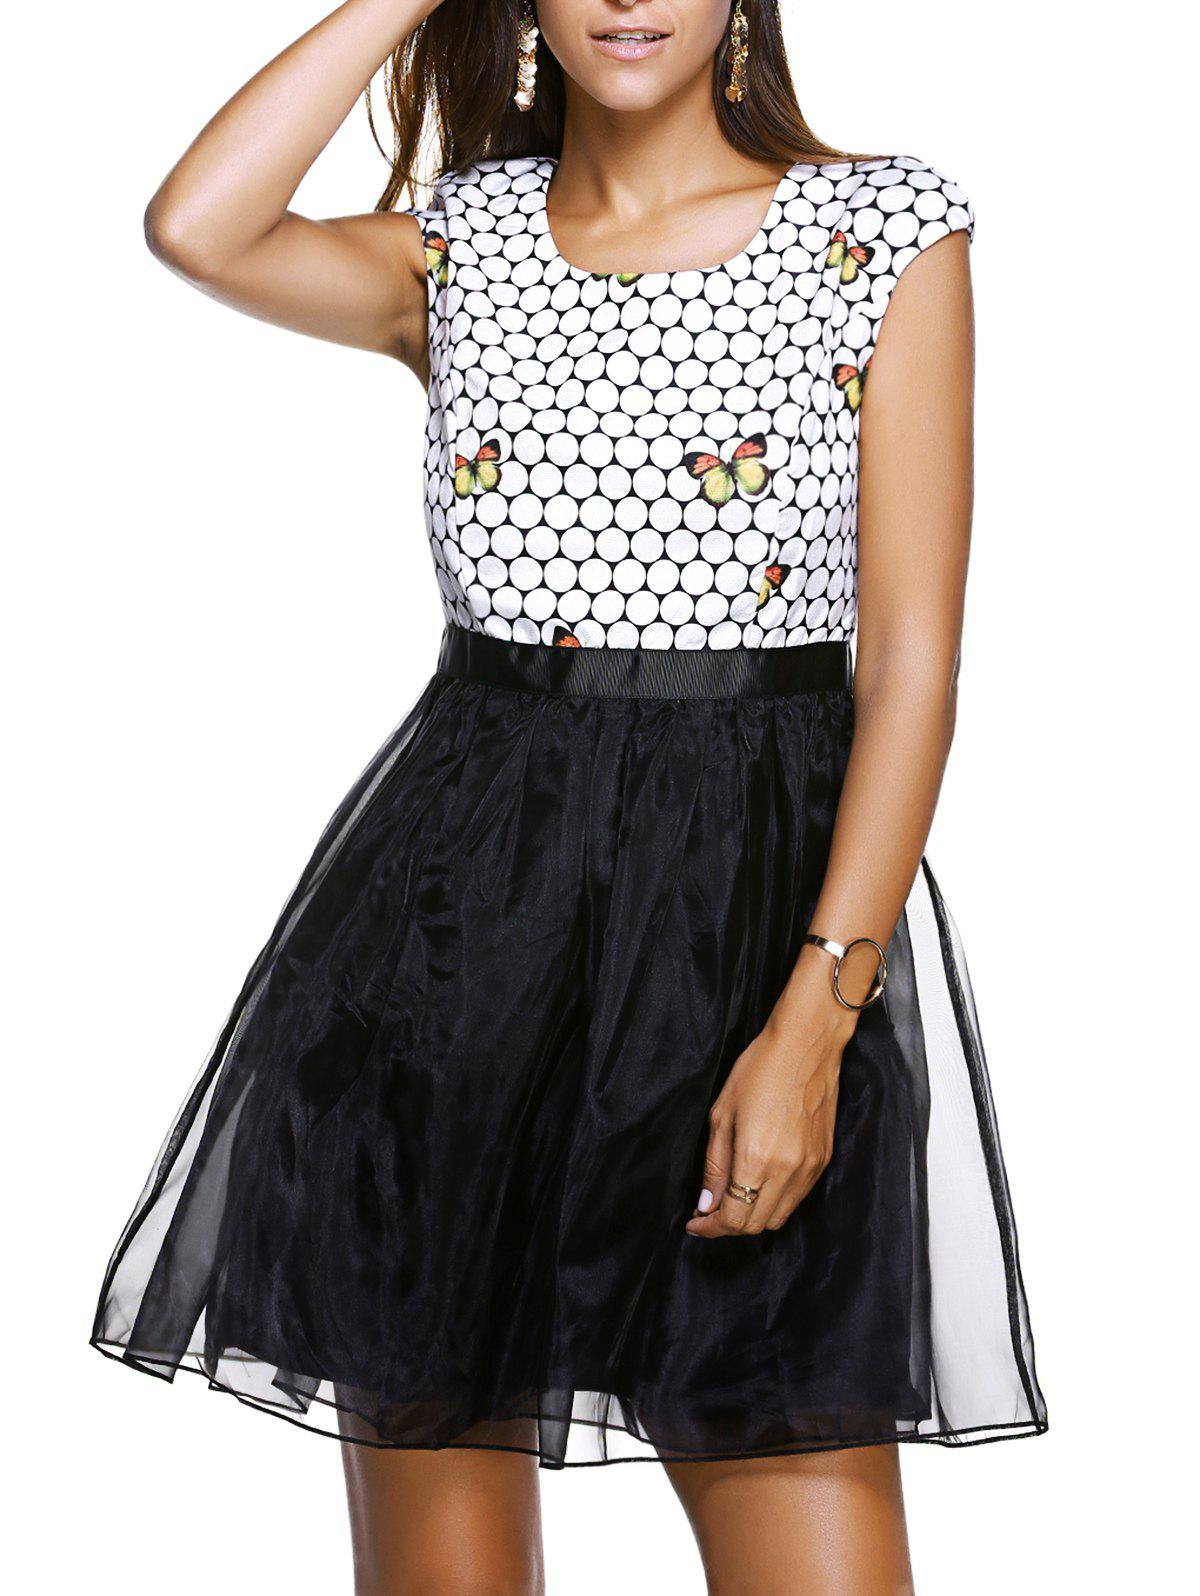 Sweet Women's Scoop Neck Cap Sleeve Butterfly Print Organza Dress - WHITE/BLACK S